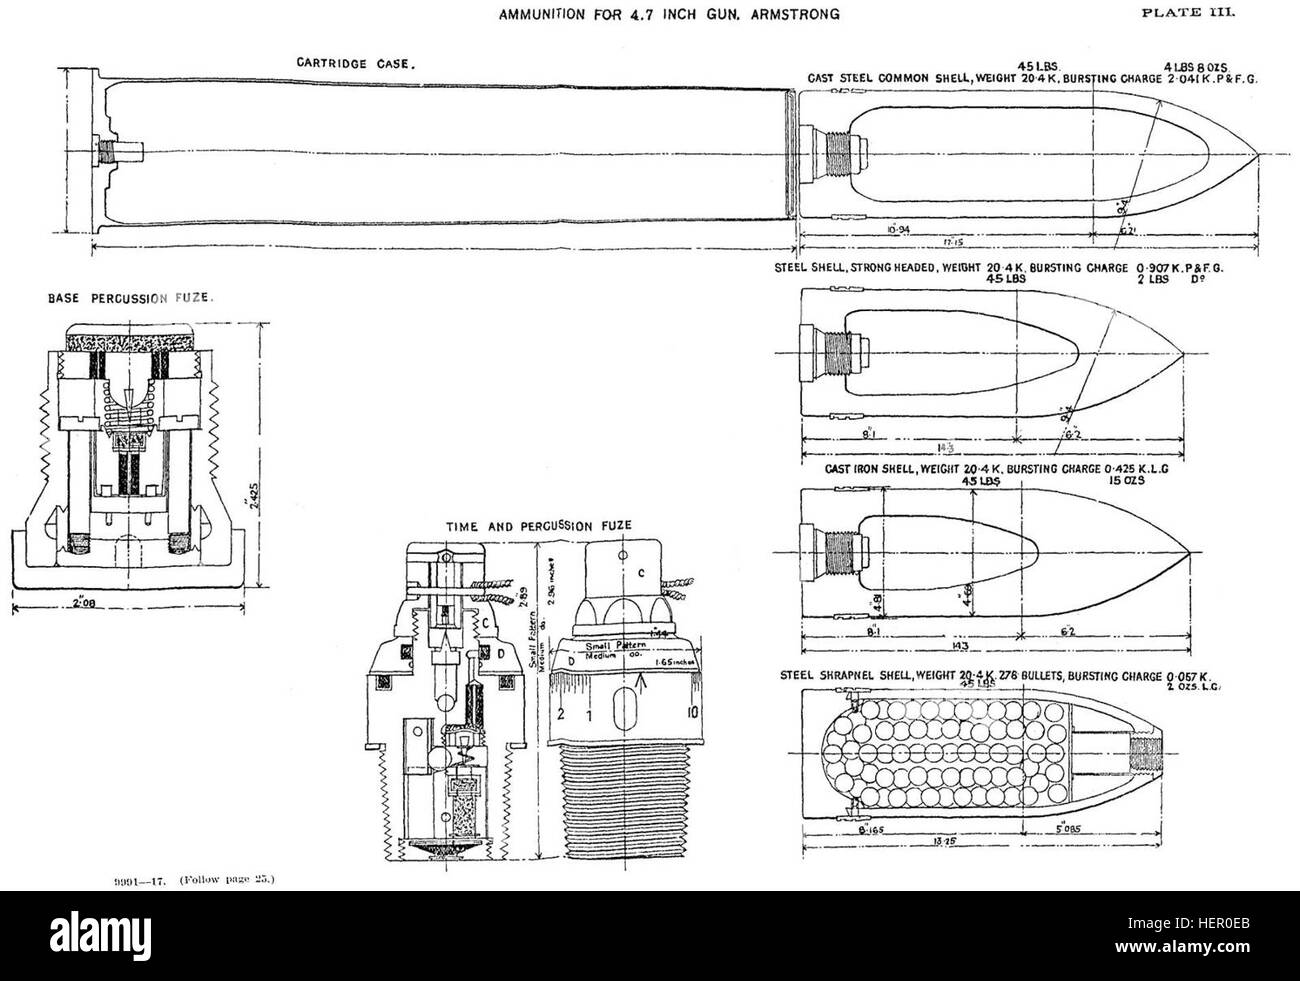 QF 4.7 inch gun ammunition diagrams US service - Stock Image